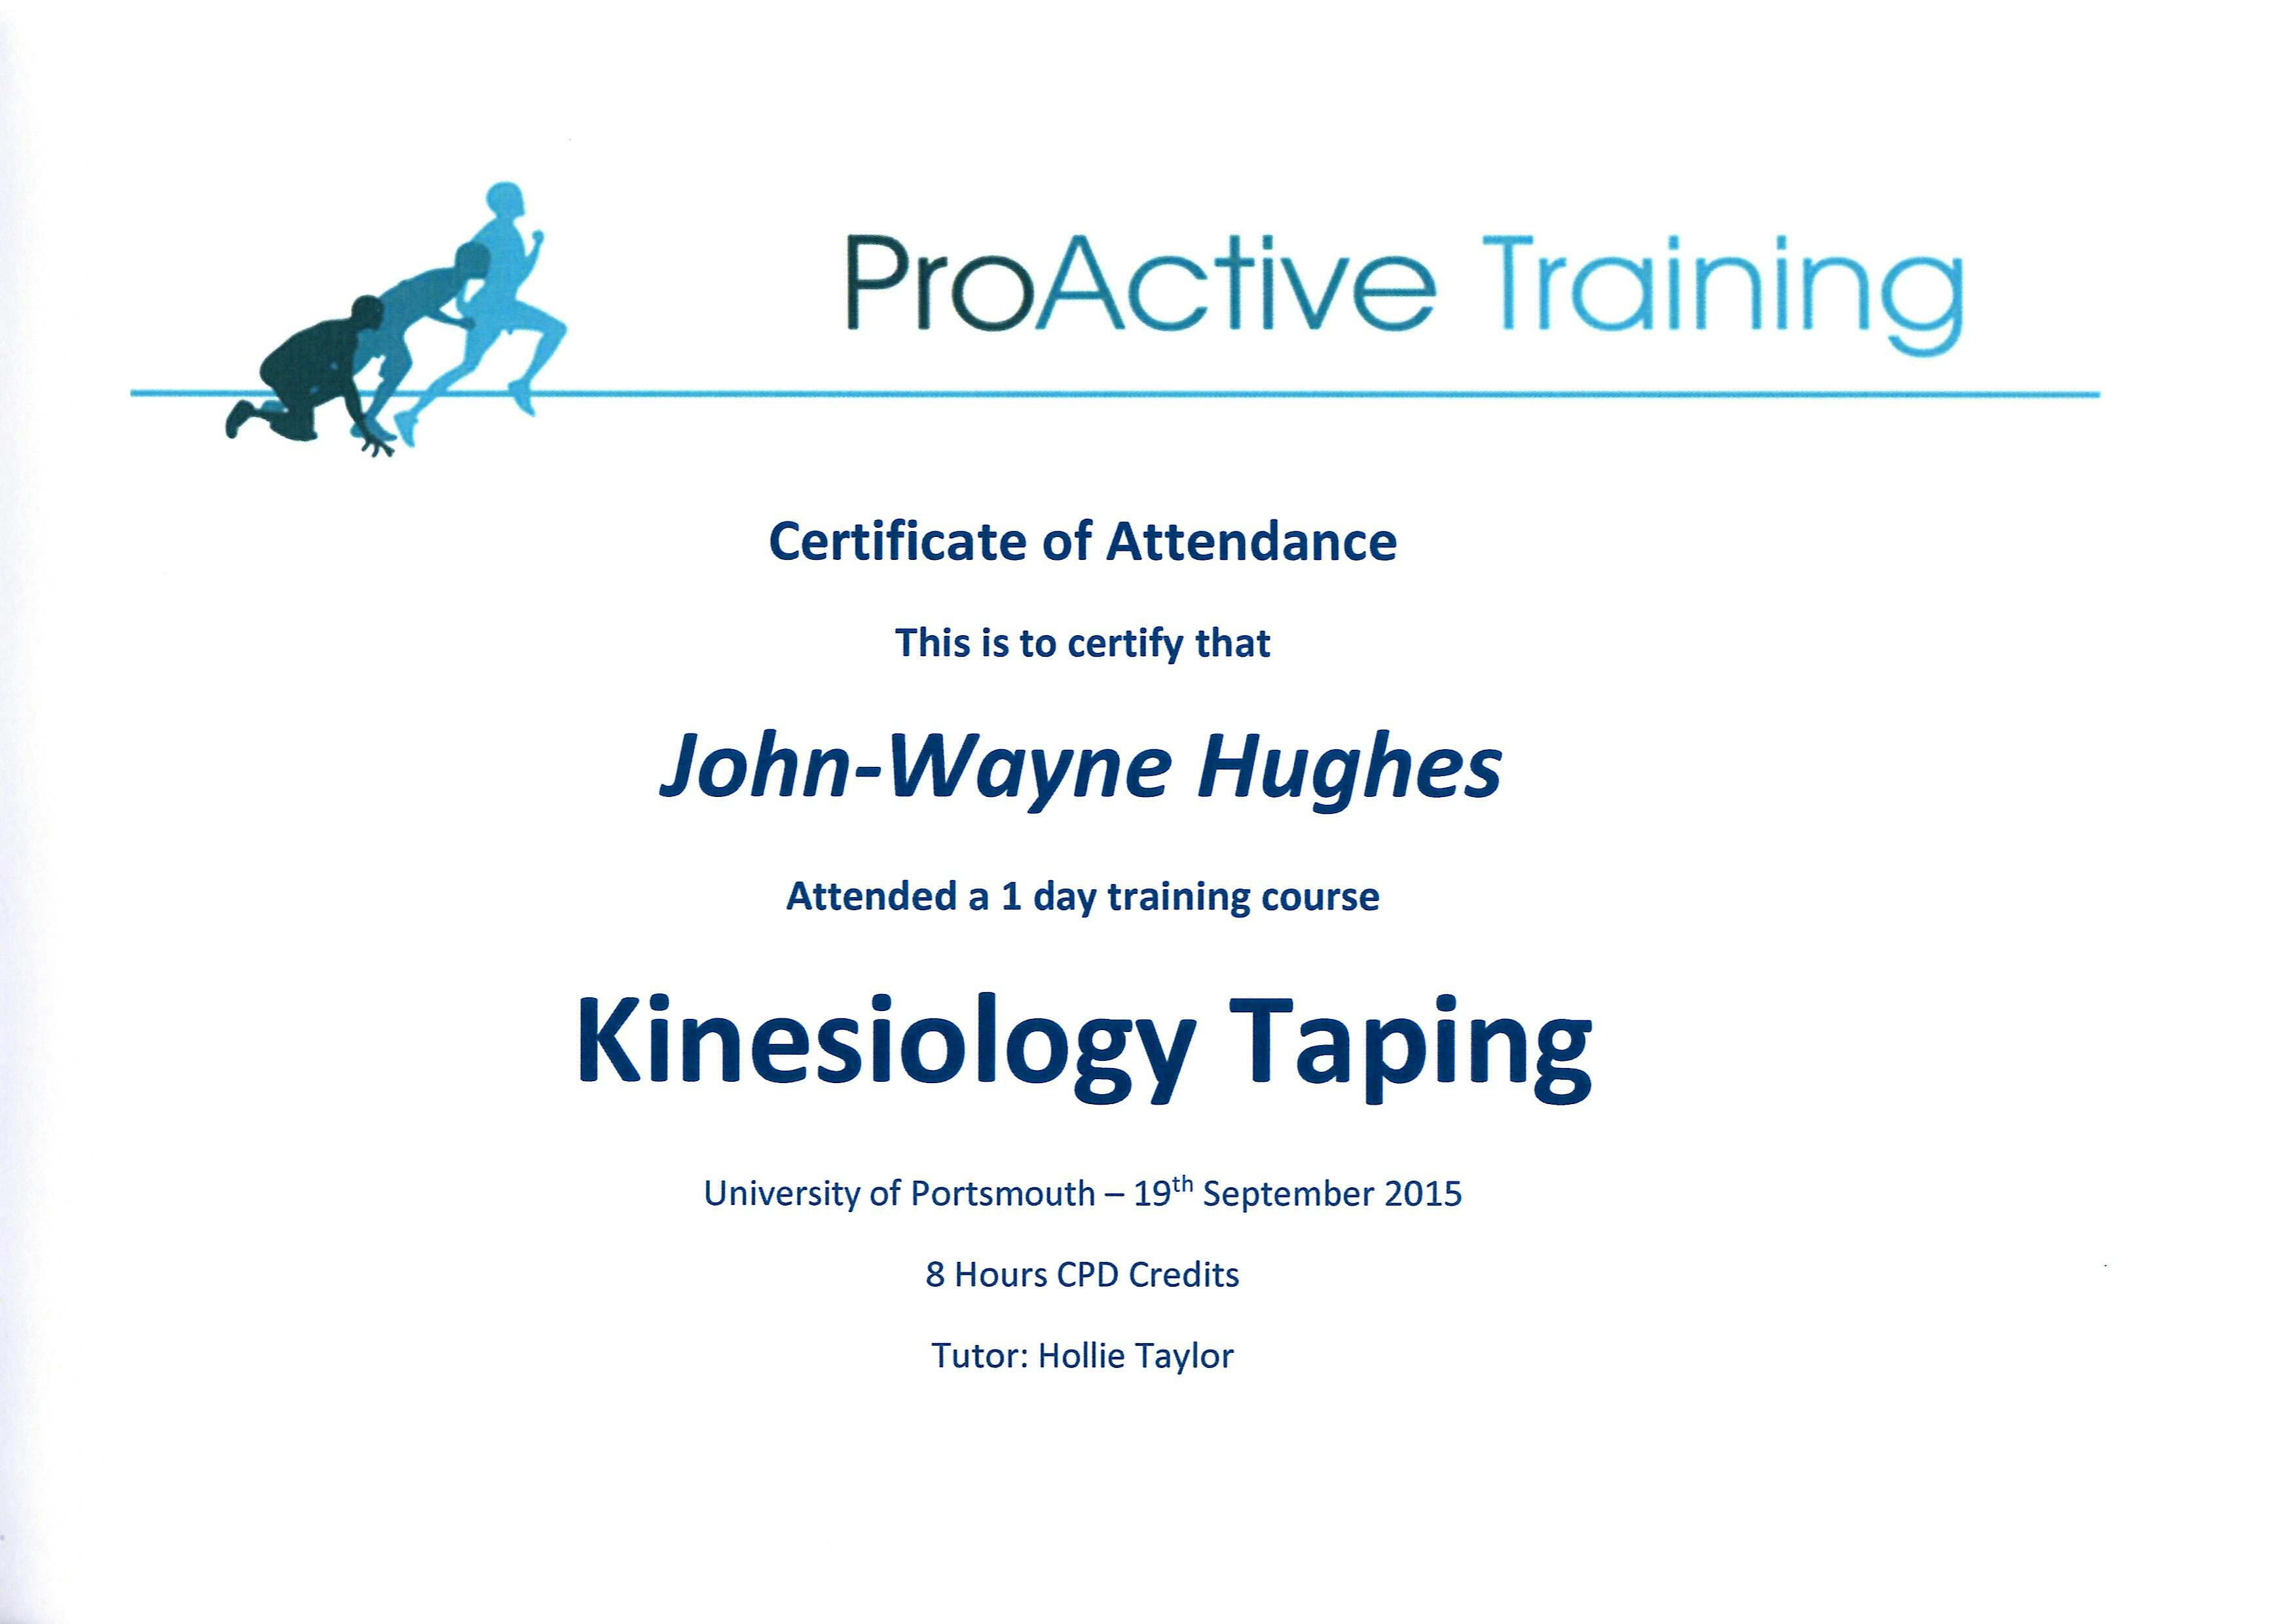 Kinesiology Taping Certification